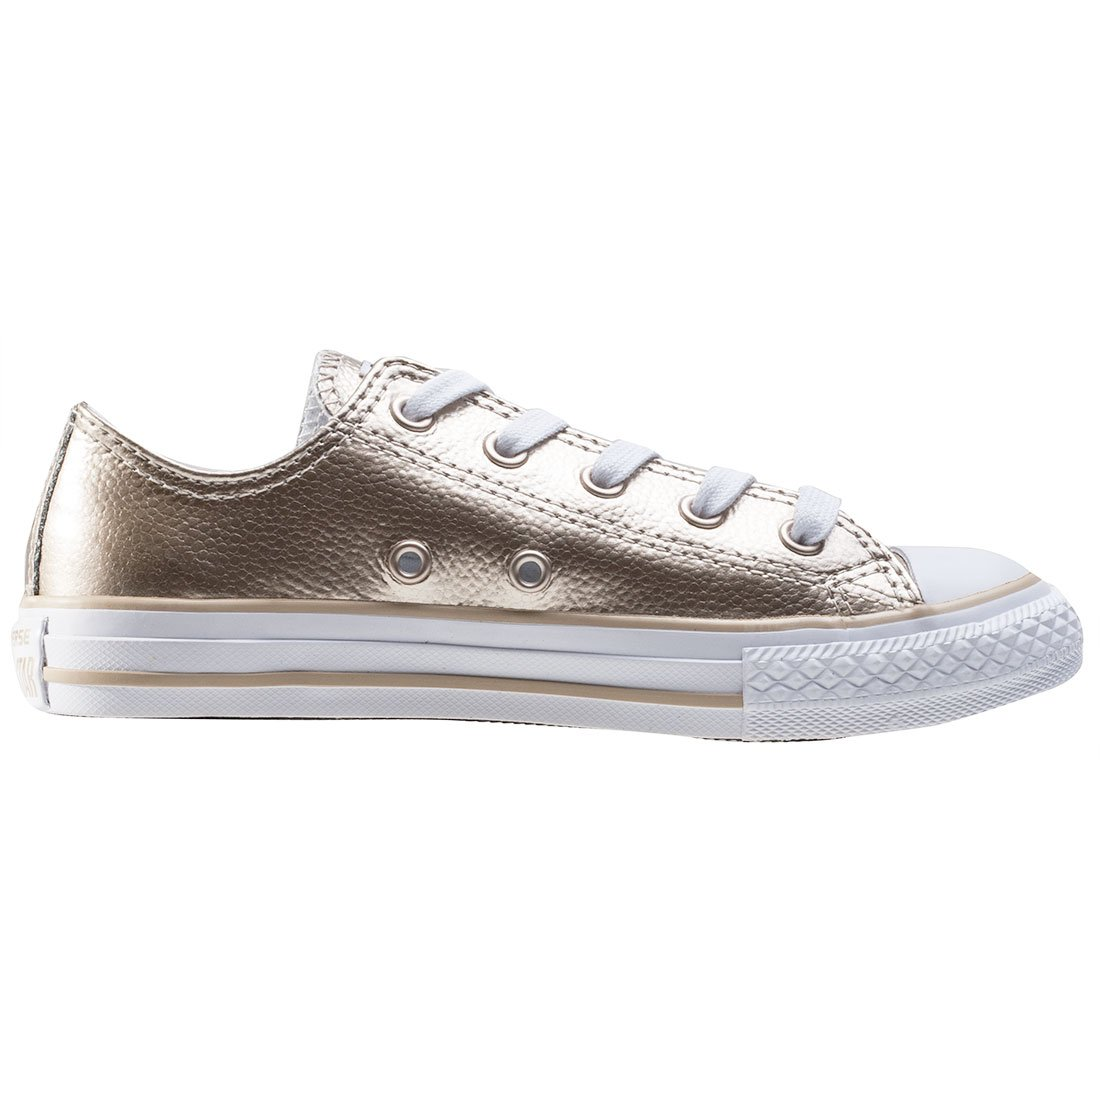 98c21b53ff79ec Amazon.com  Converse Chuck Taylor All Star Metallic Ox Light Gold Leather  11.5 M US Little Kid  Shoes